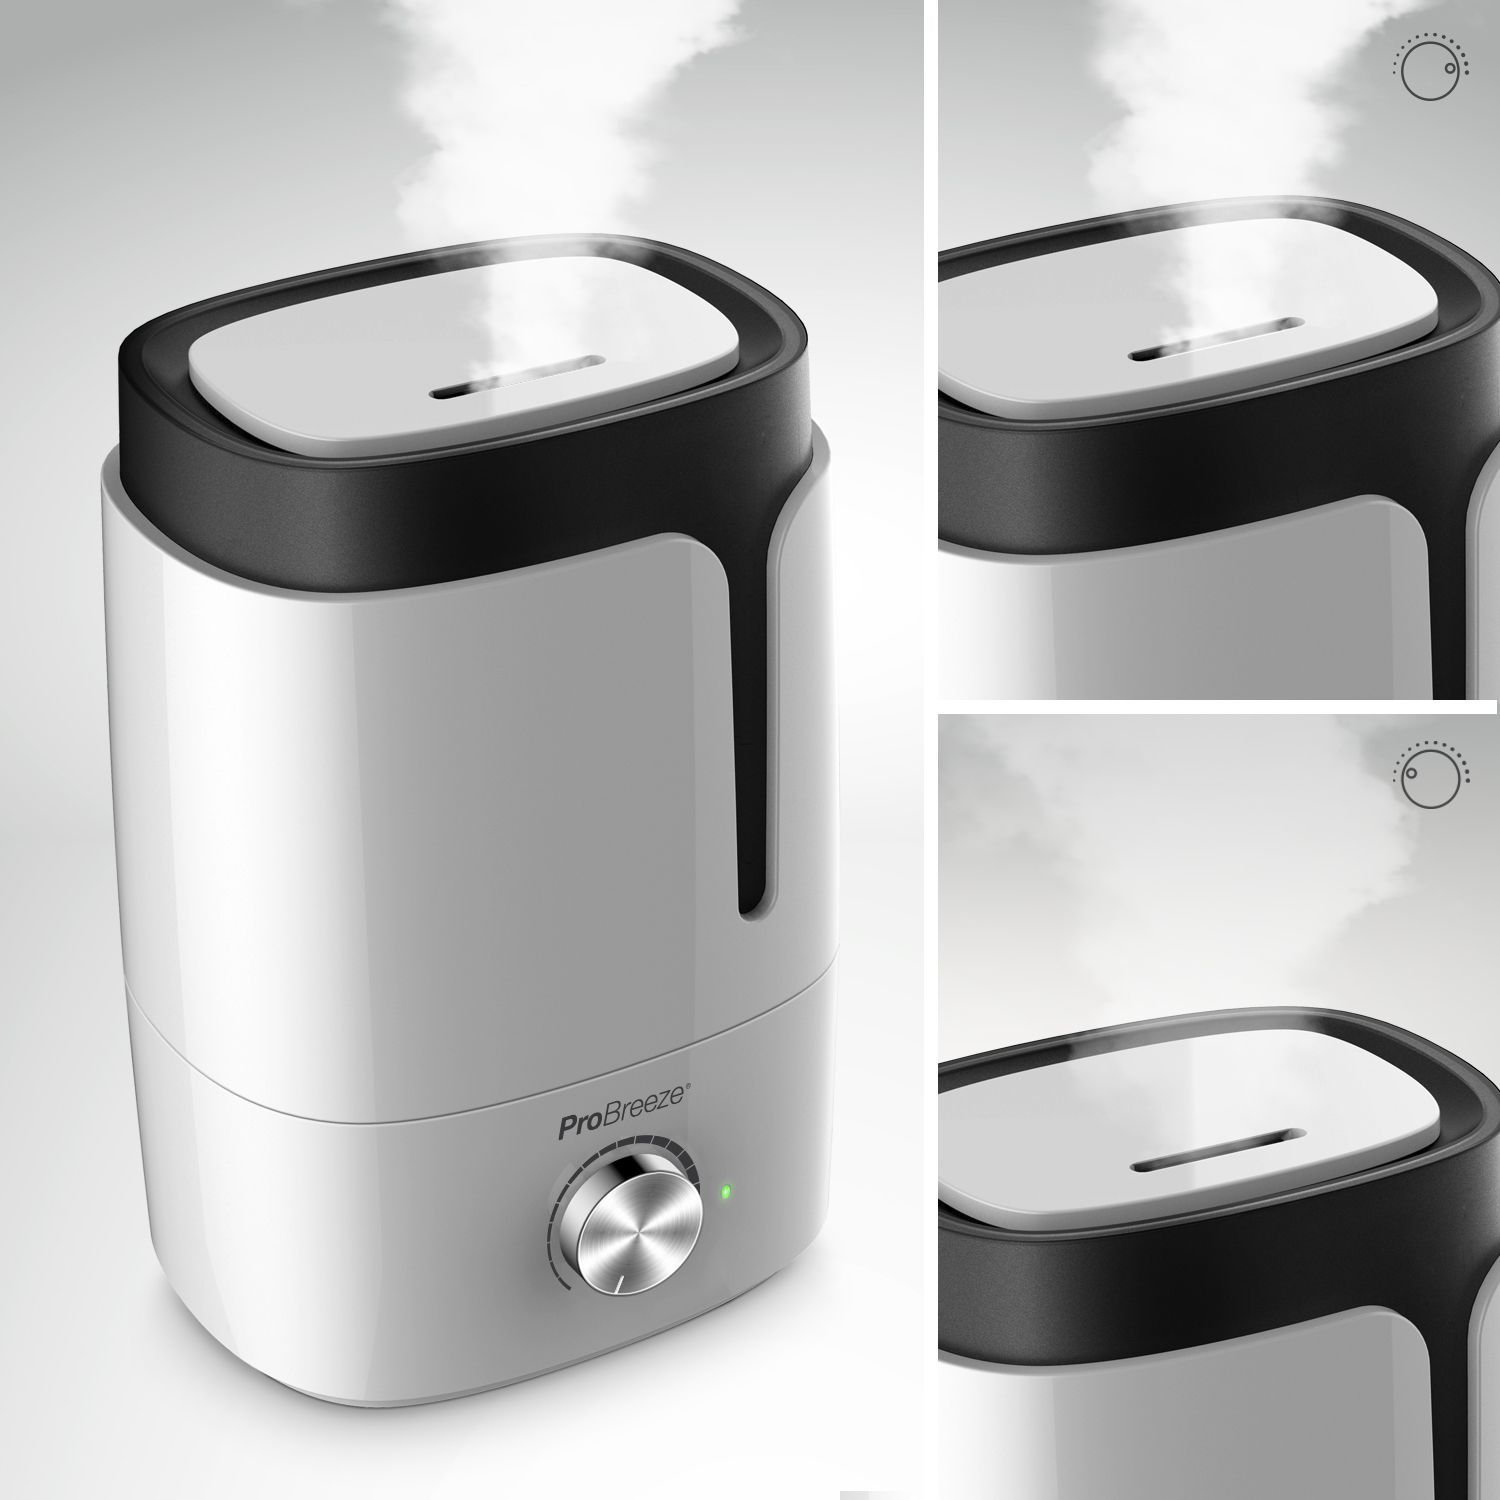 This large 3.5 Litre humidifier from Pro Breeze instantly